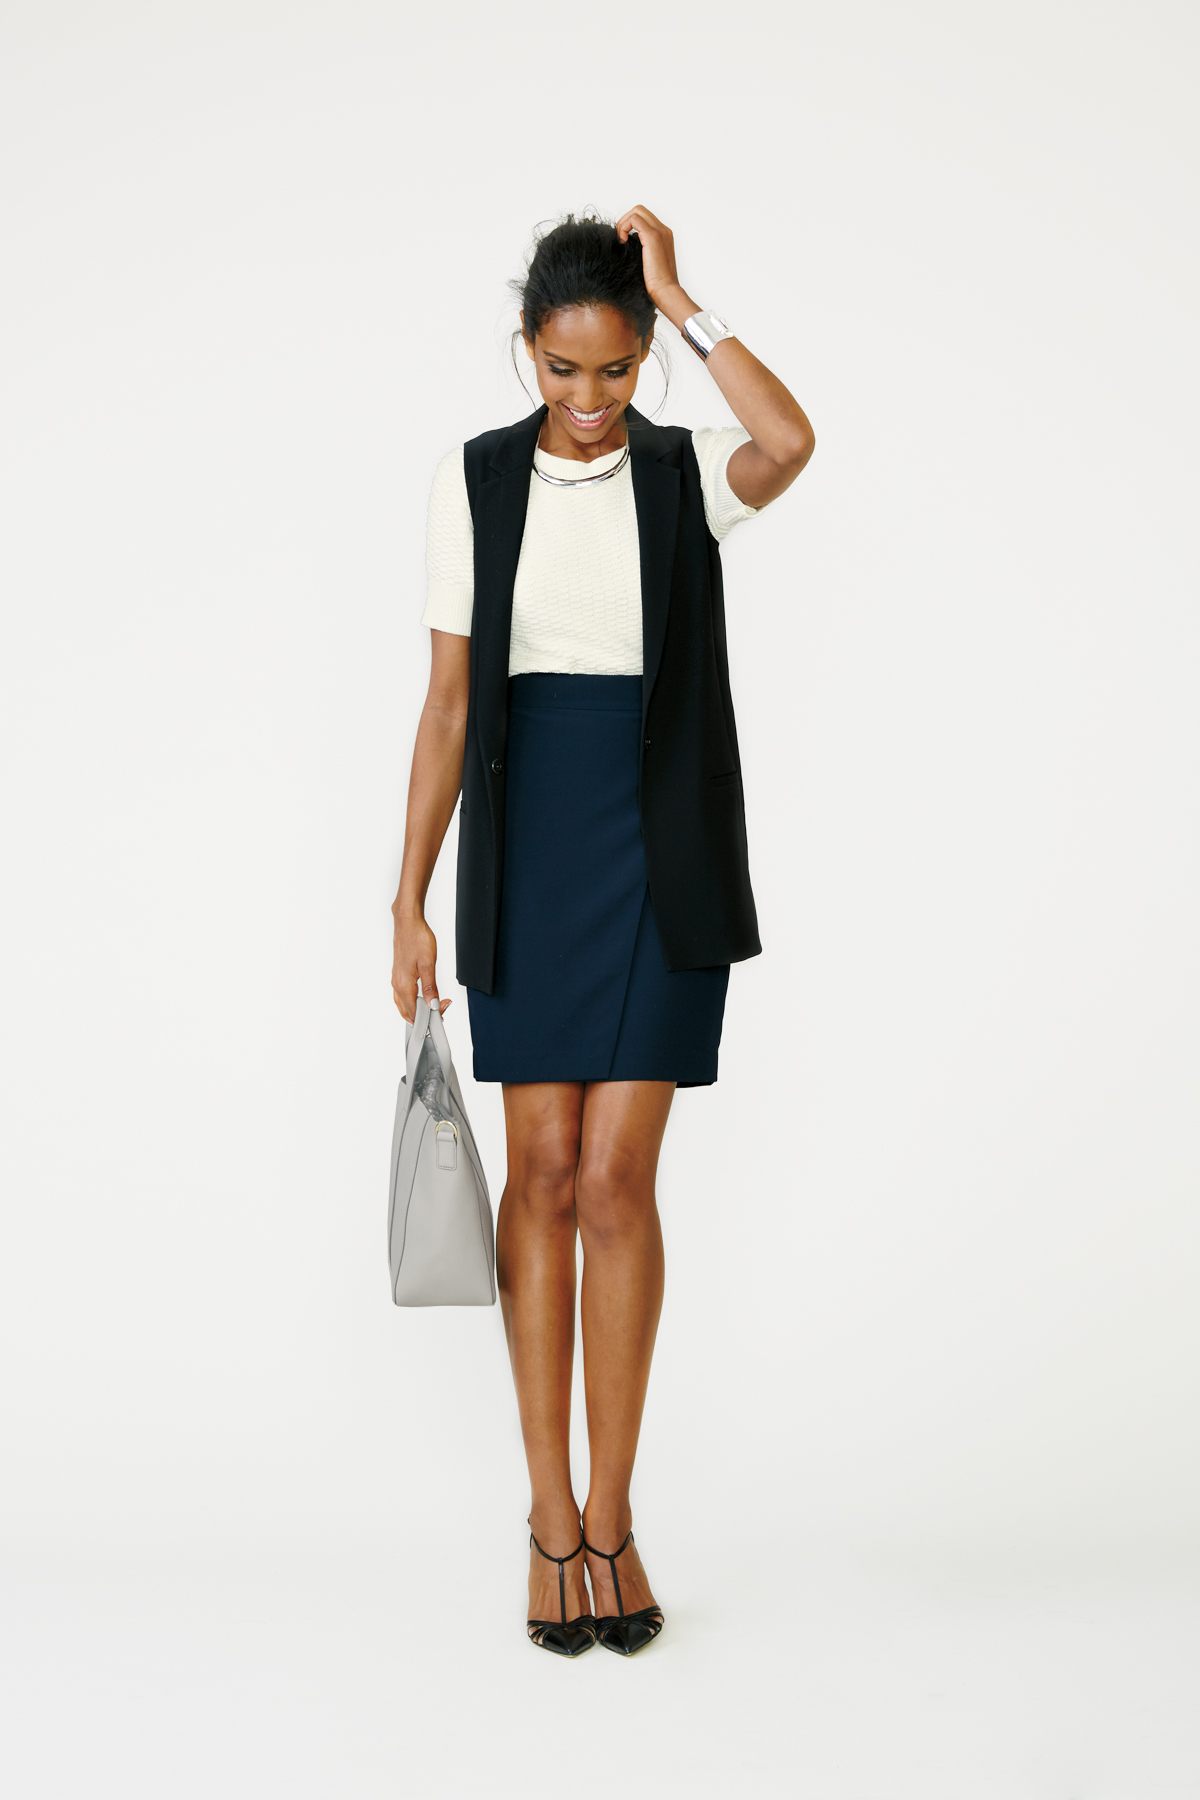 Vest + Sweater + Pencil Skirt + Heels